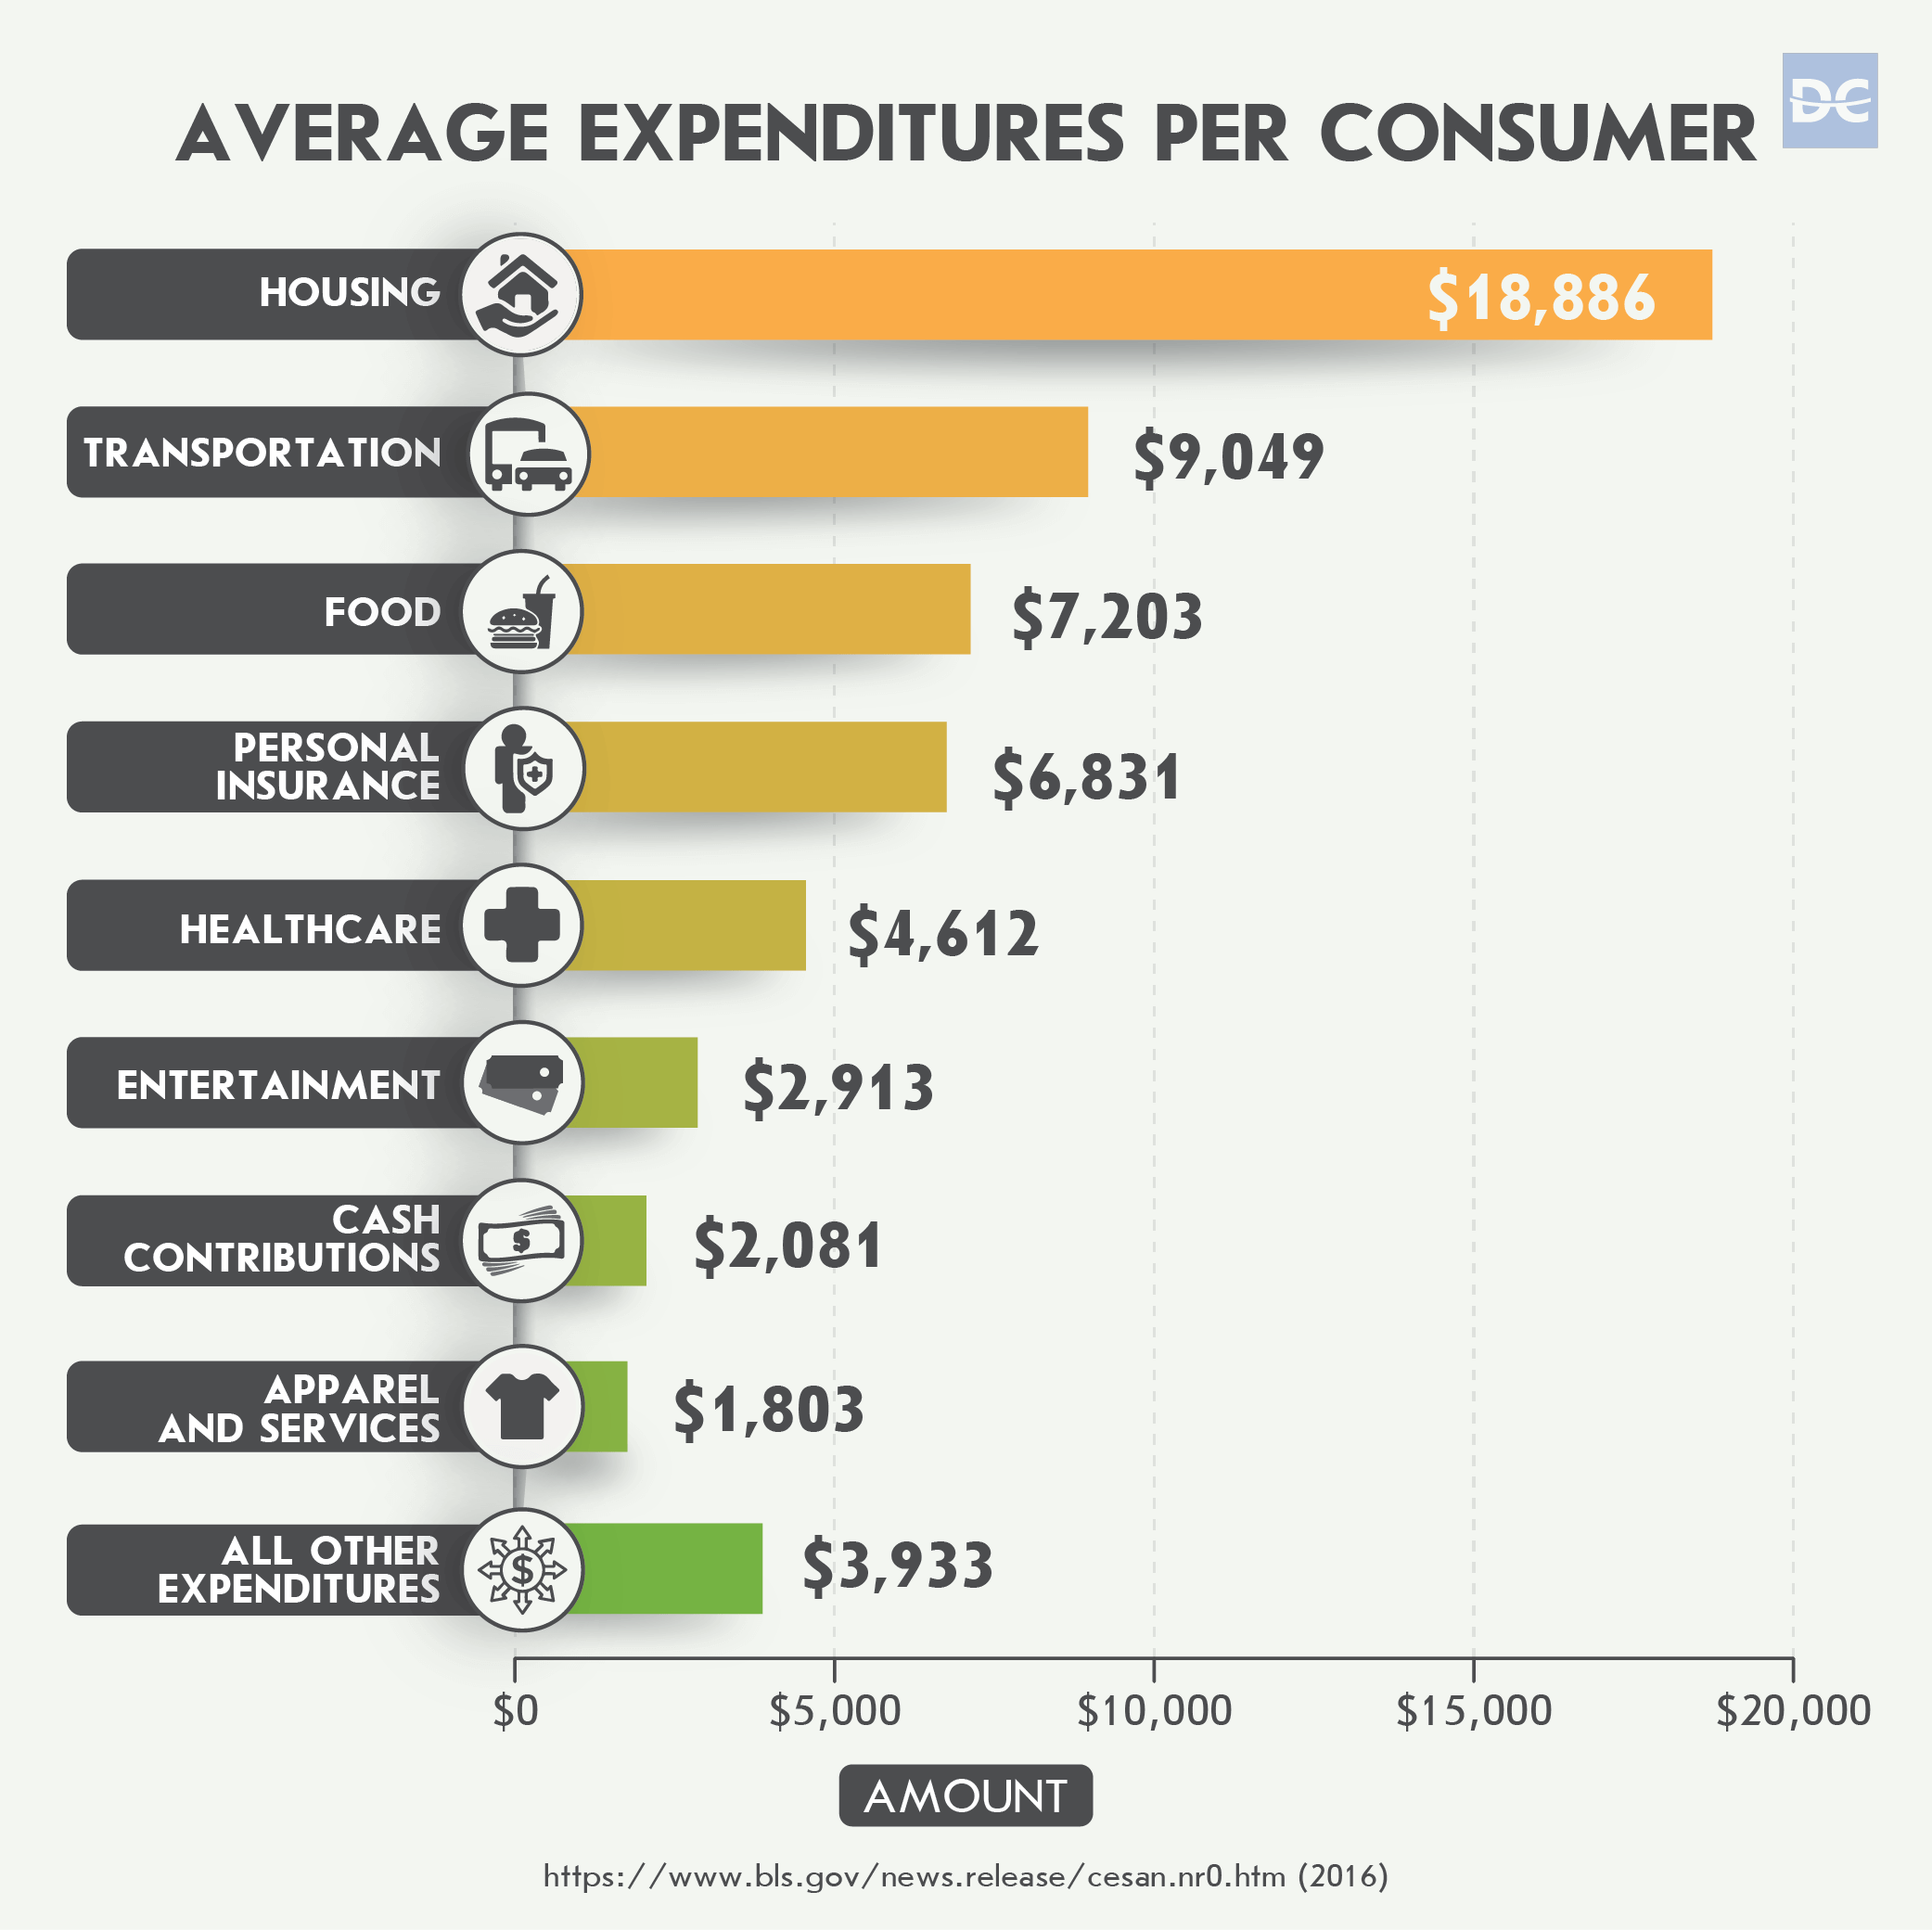 Average Expenditures Per Consumer in 2016